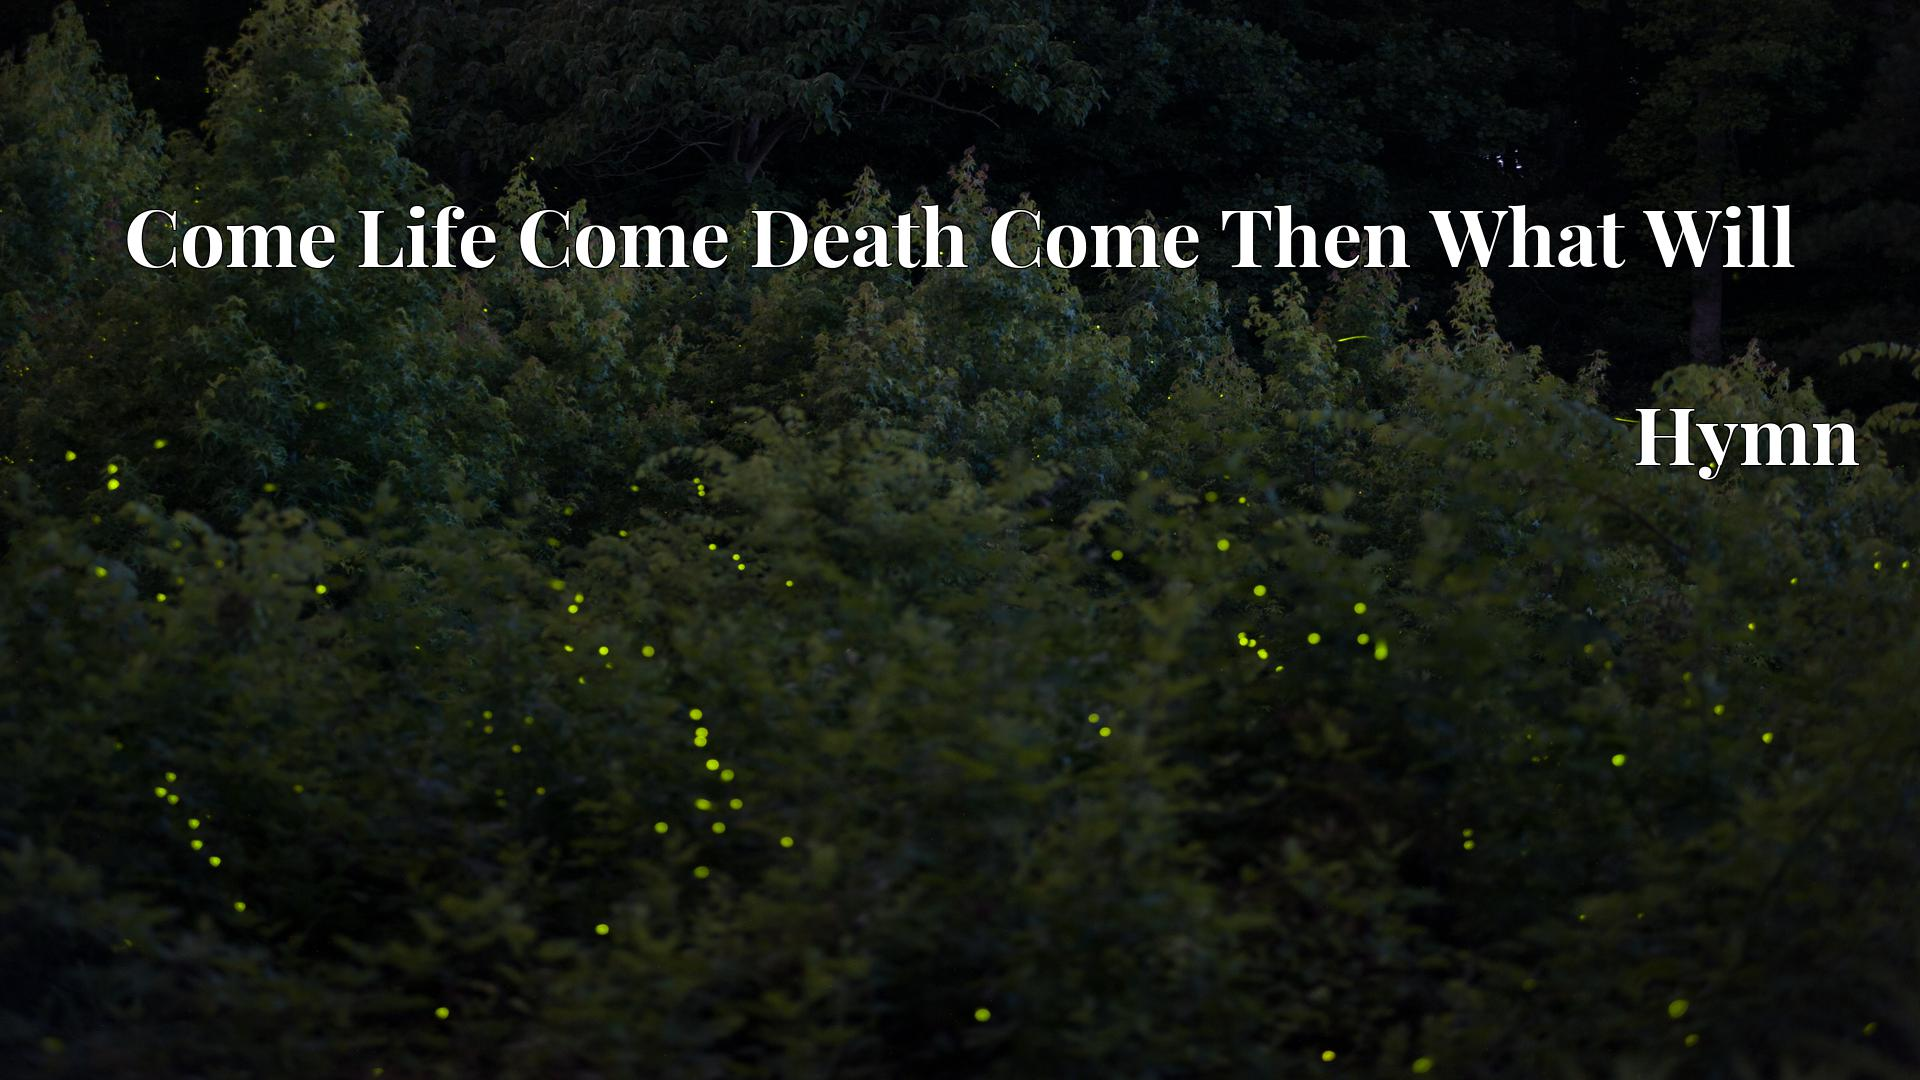 Come Life Come Death Come Then What Will - Hymn